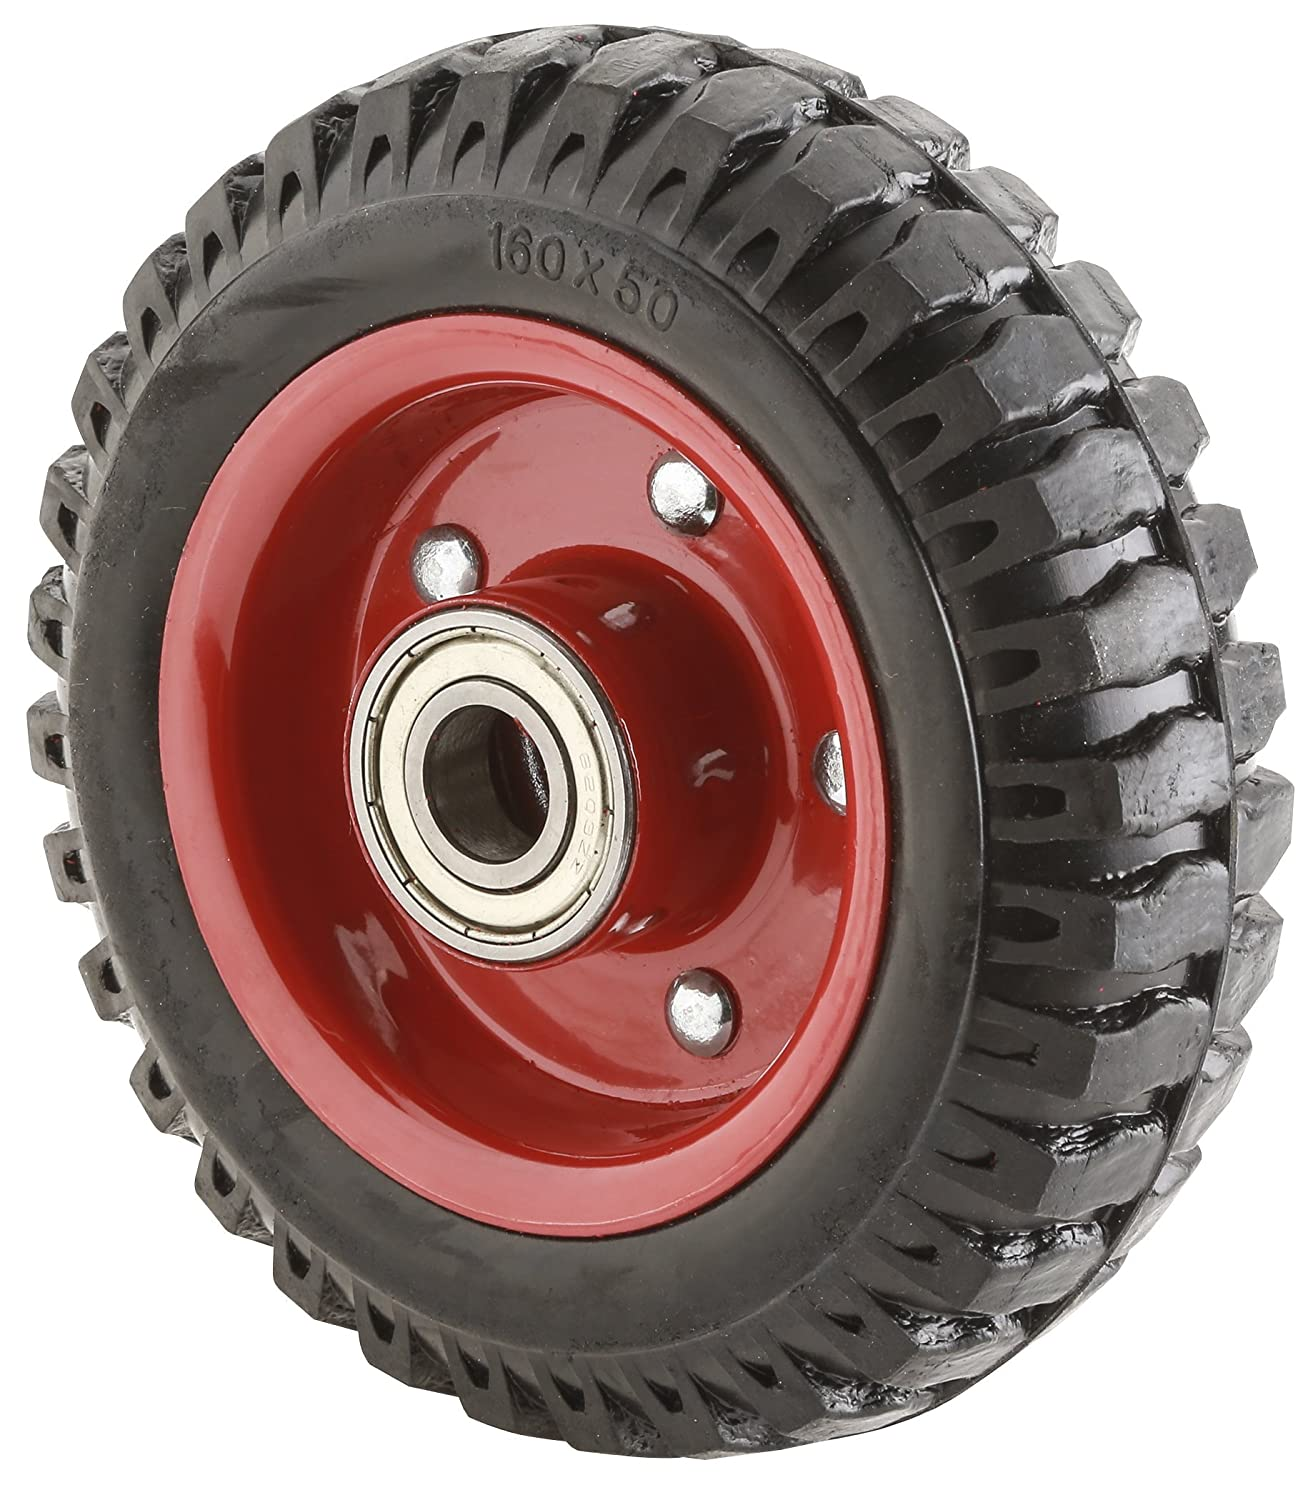 Steelex D2647 6 1 4 Inch Single Wheel with Double Bearing